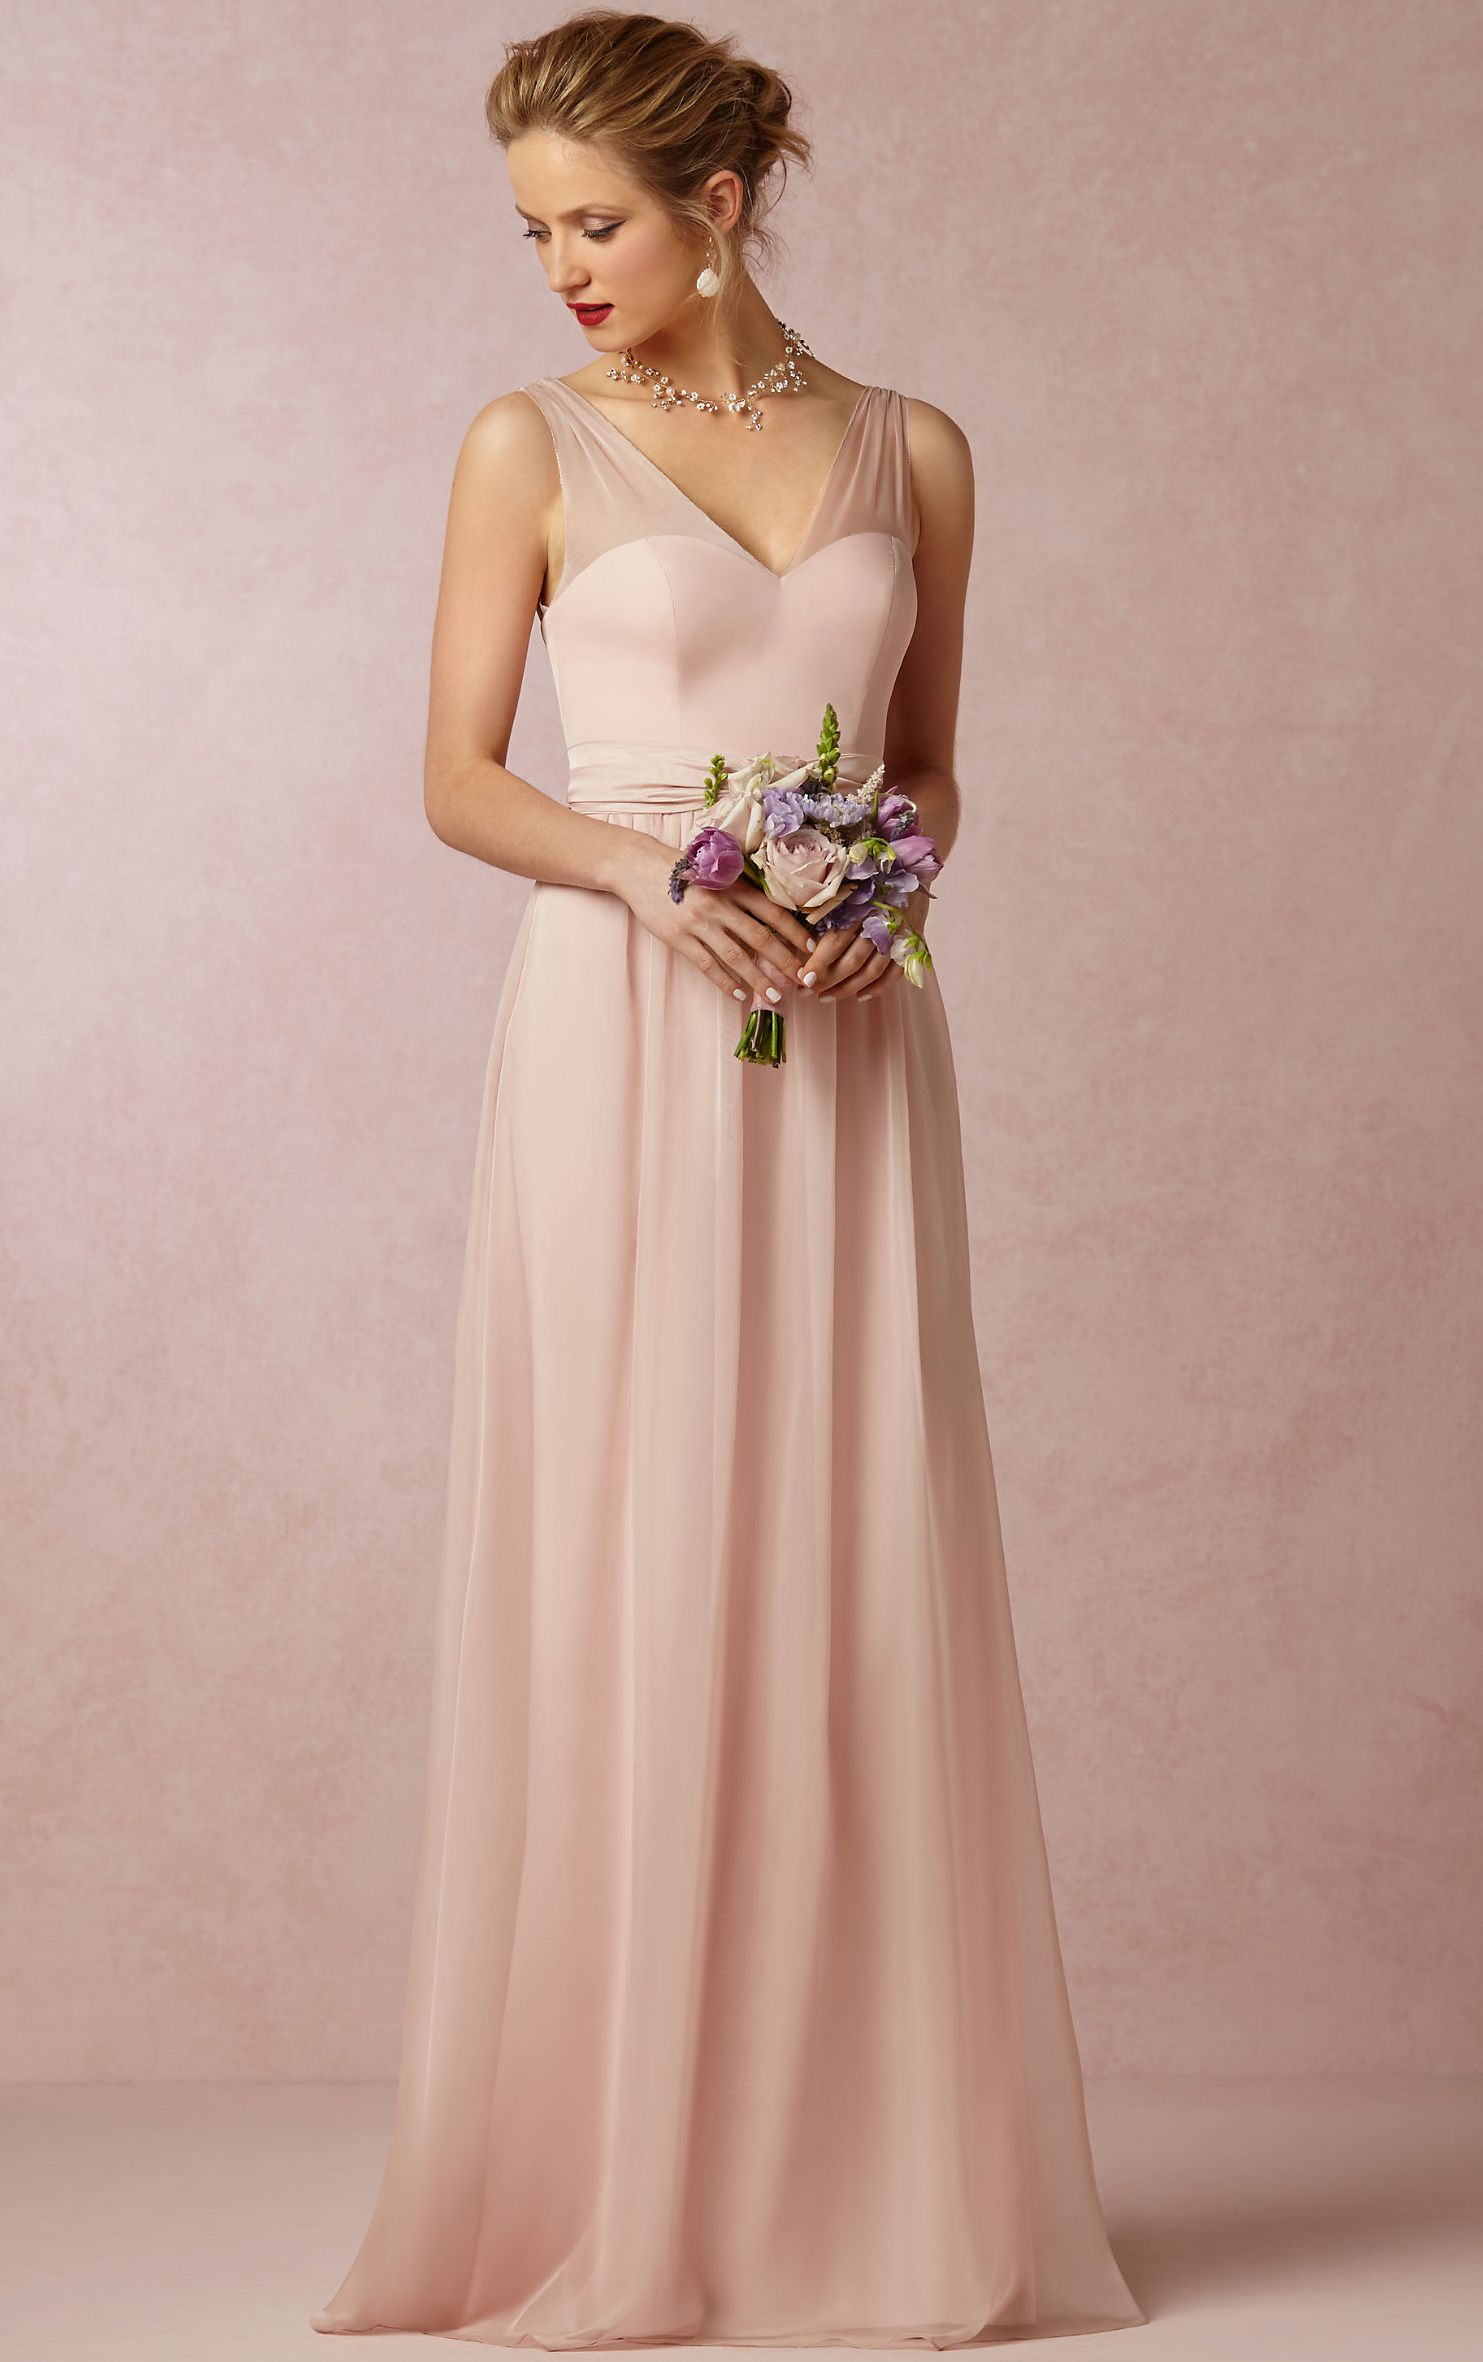 V-neck A-line Sleeveless Natural Floor-length Bridesmaid Dresses ...